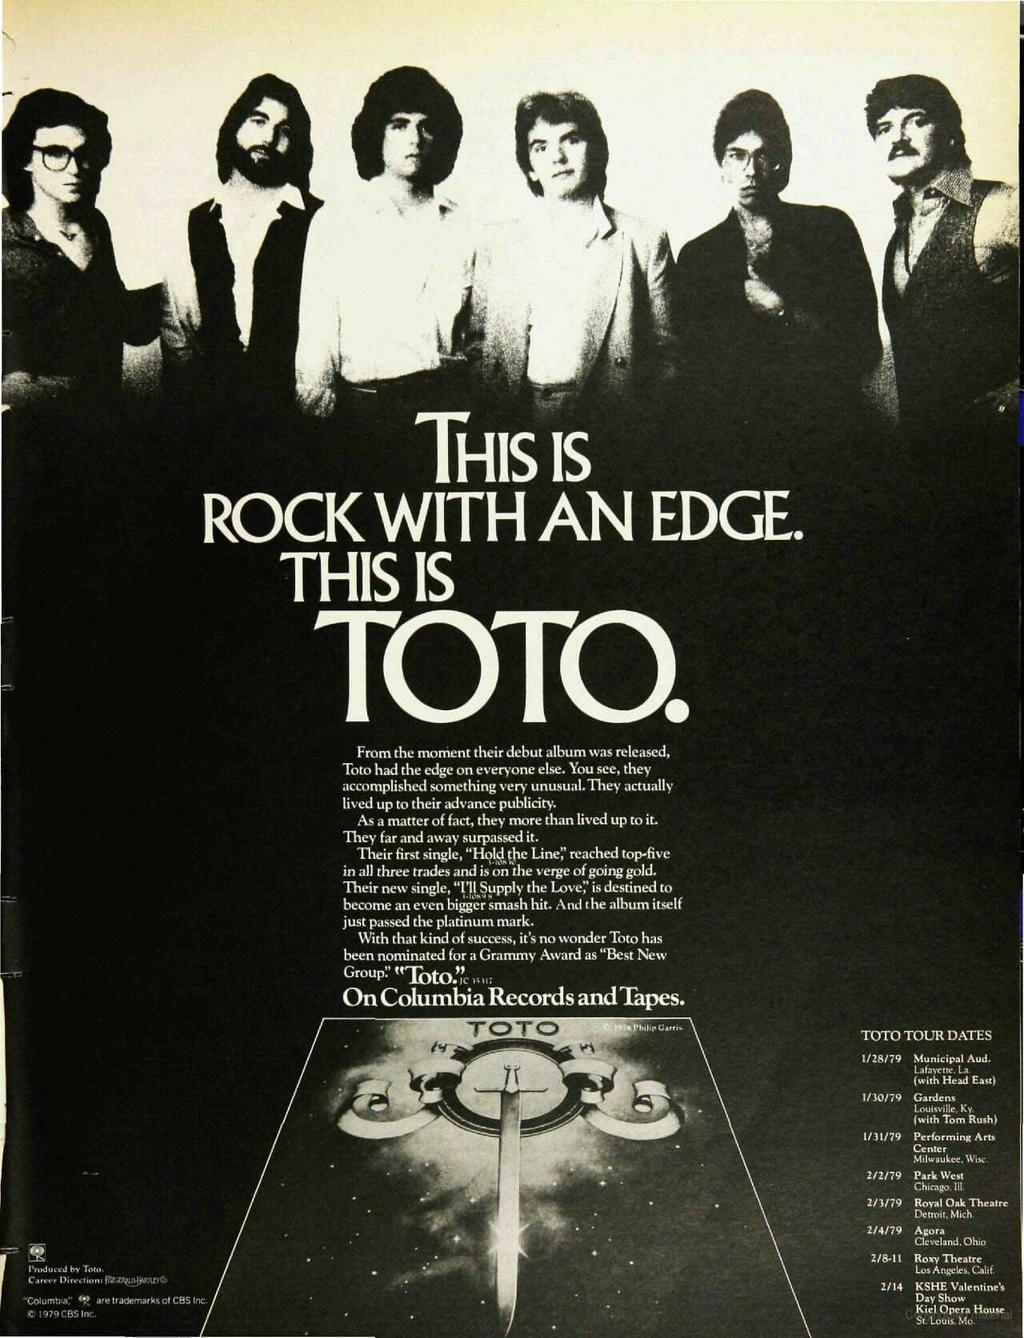 401: THS is ROCK WTH AN EDGE. THS S TOTO. From the moment their debut album was released, Toto had the edge on everyone else. You see, they accomplished something very unusual.